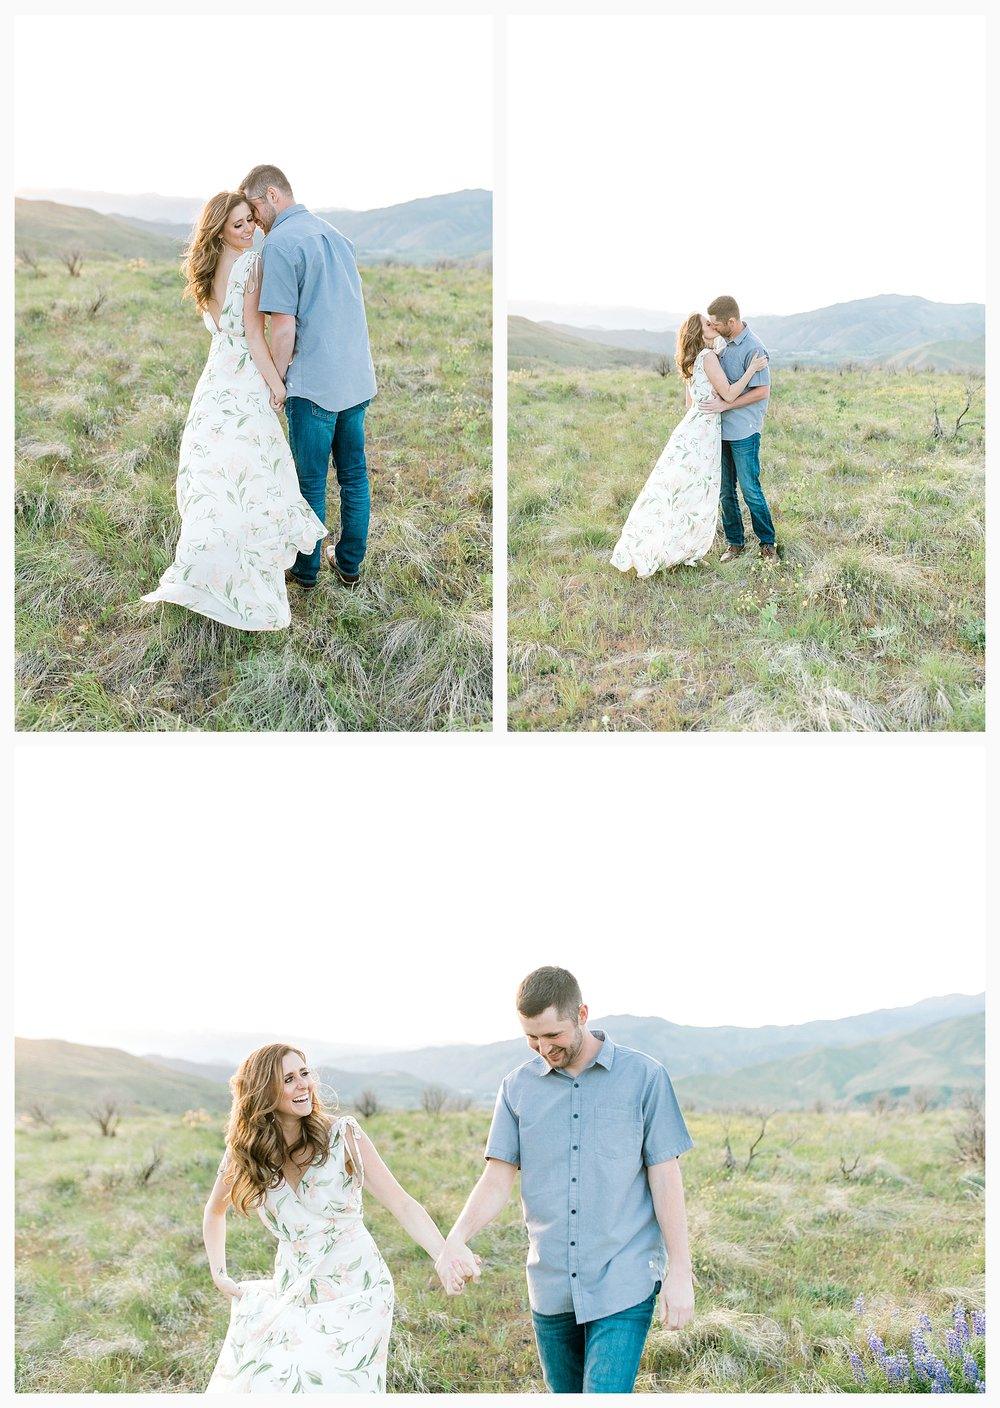 Engagement session amongst the wildflowers in Wenatchee, Washington | Engagement Session Outfit Inspiration for Wedding Photography with Emma Rose Company | Light and Airy PNW Photographer, Seattle Bride_0034.jpg